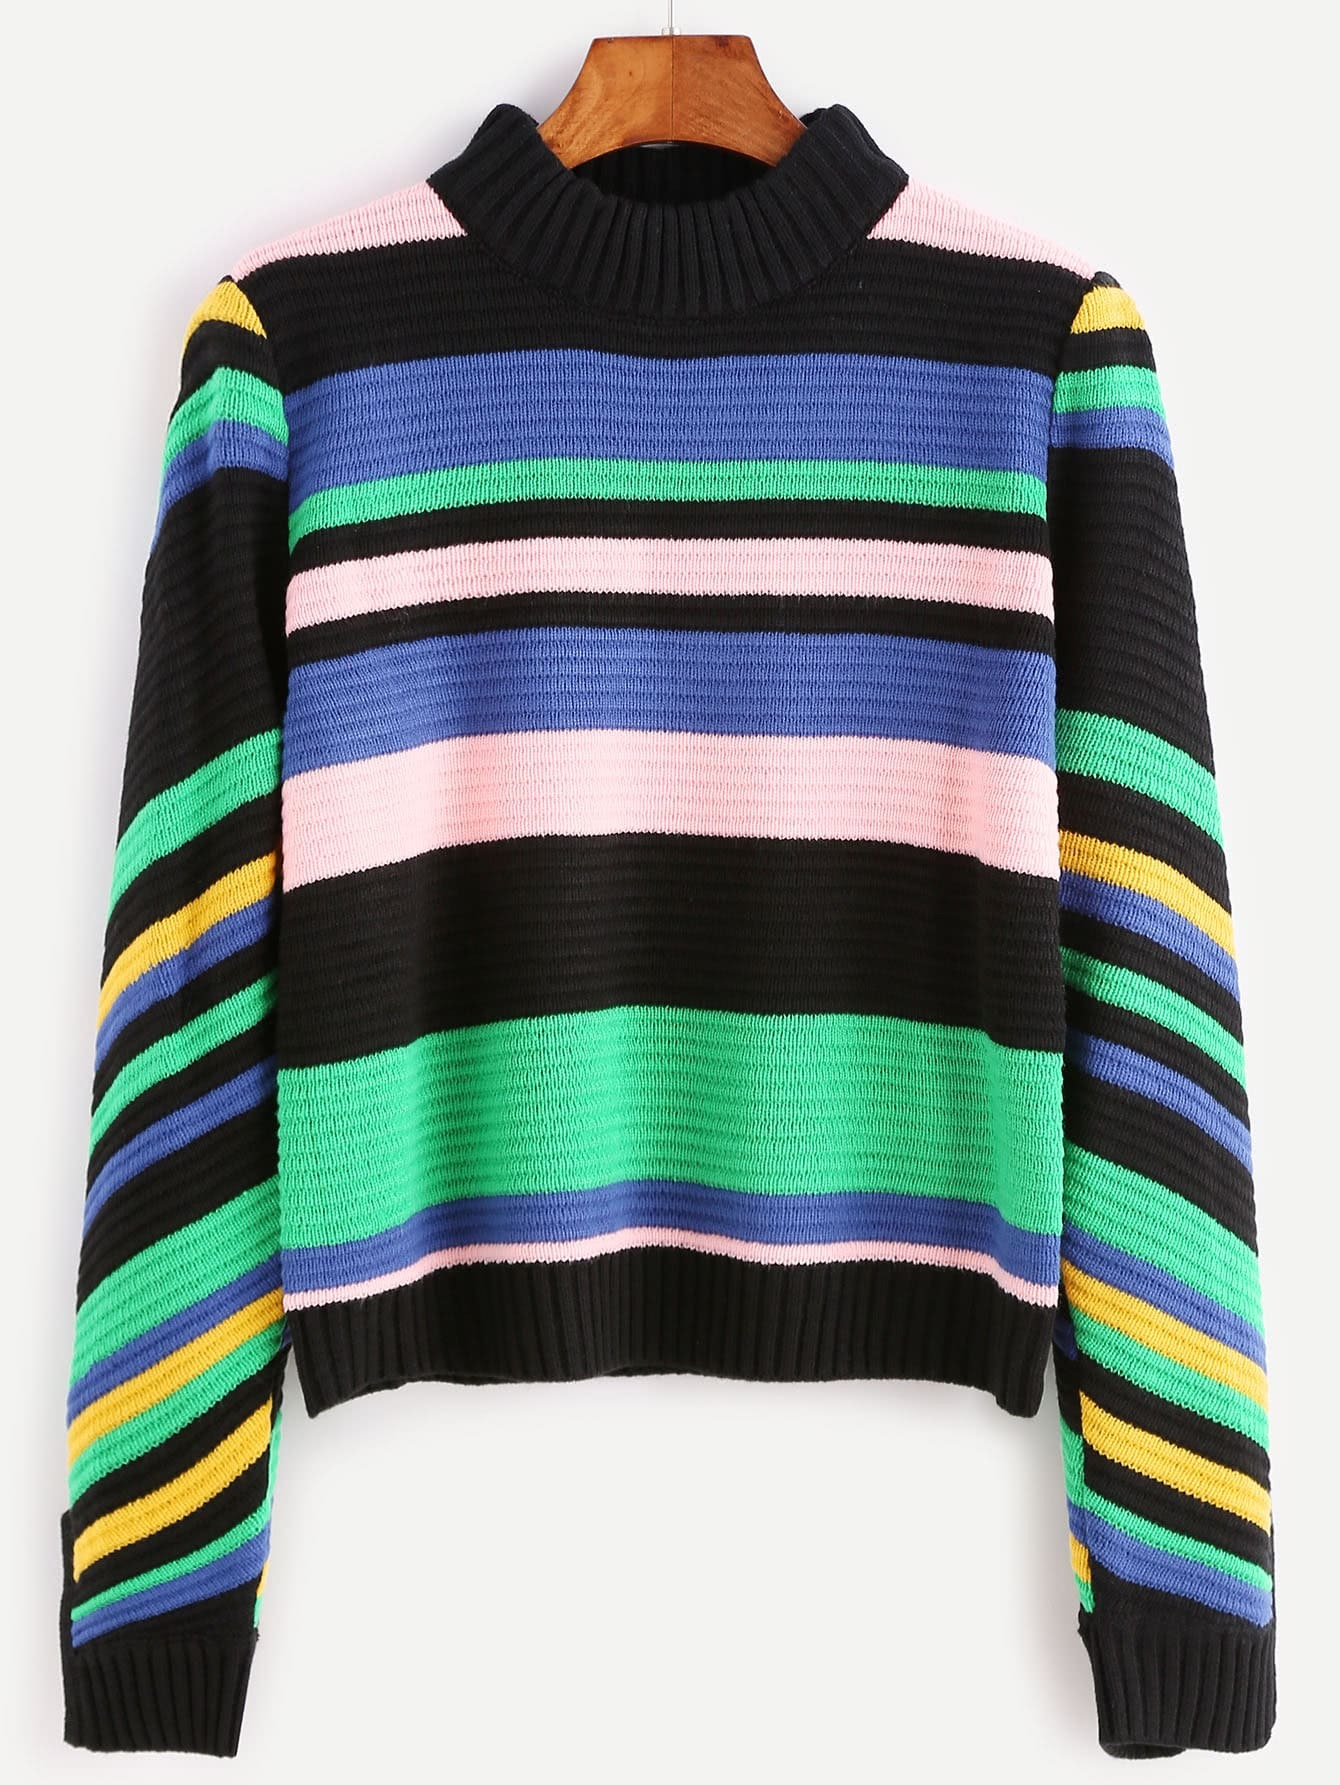 Multicolor Mixed Stripe Slit Cuff Ribbed SweaterMulticolor Mixed Stripe Slit Cuff Ribbed Sweater<br><br>color: Multicolor<br>size: one-size